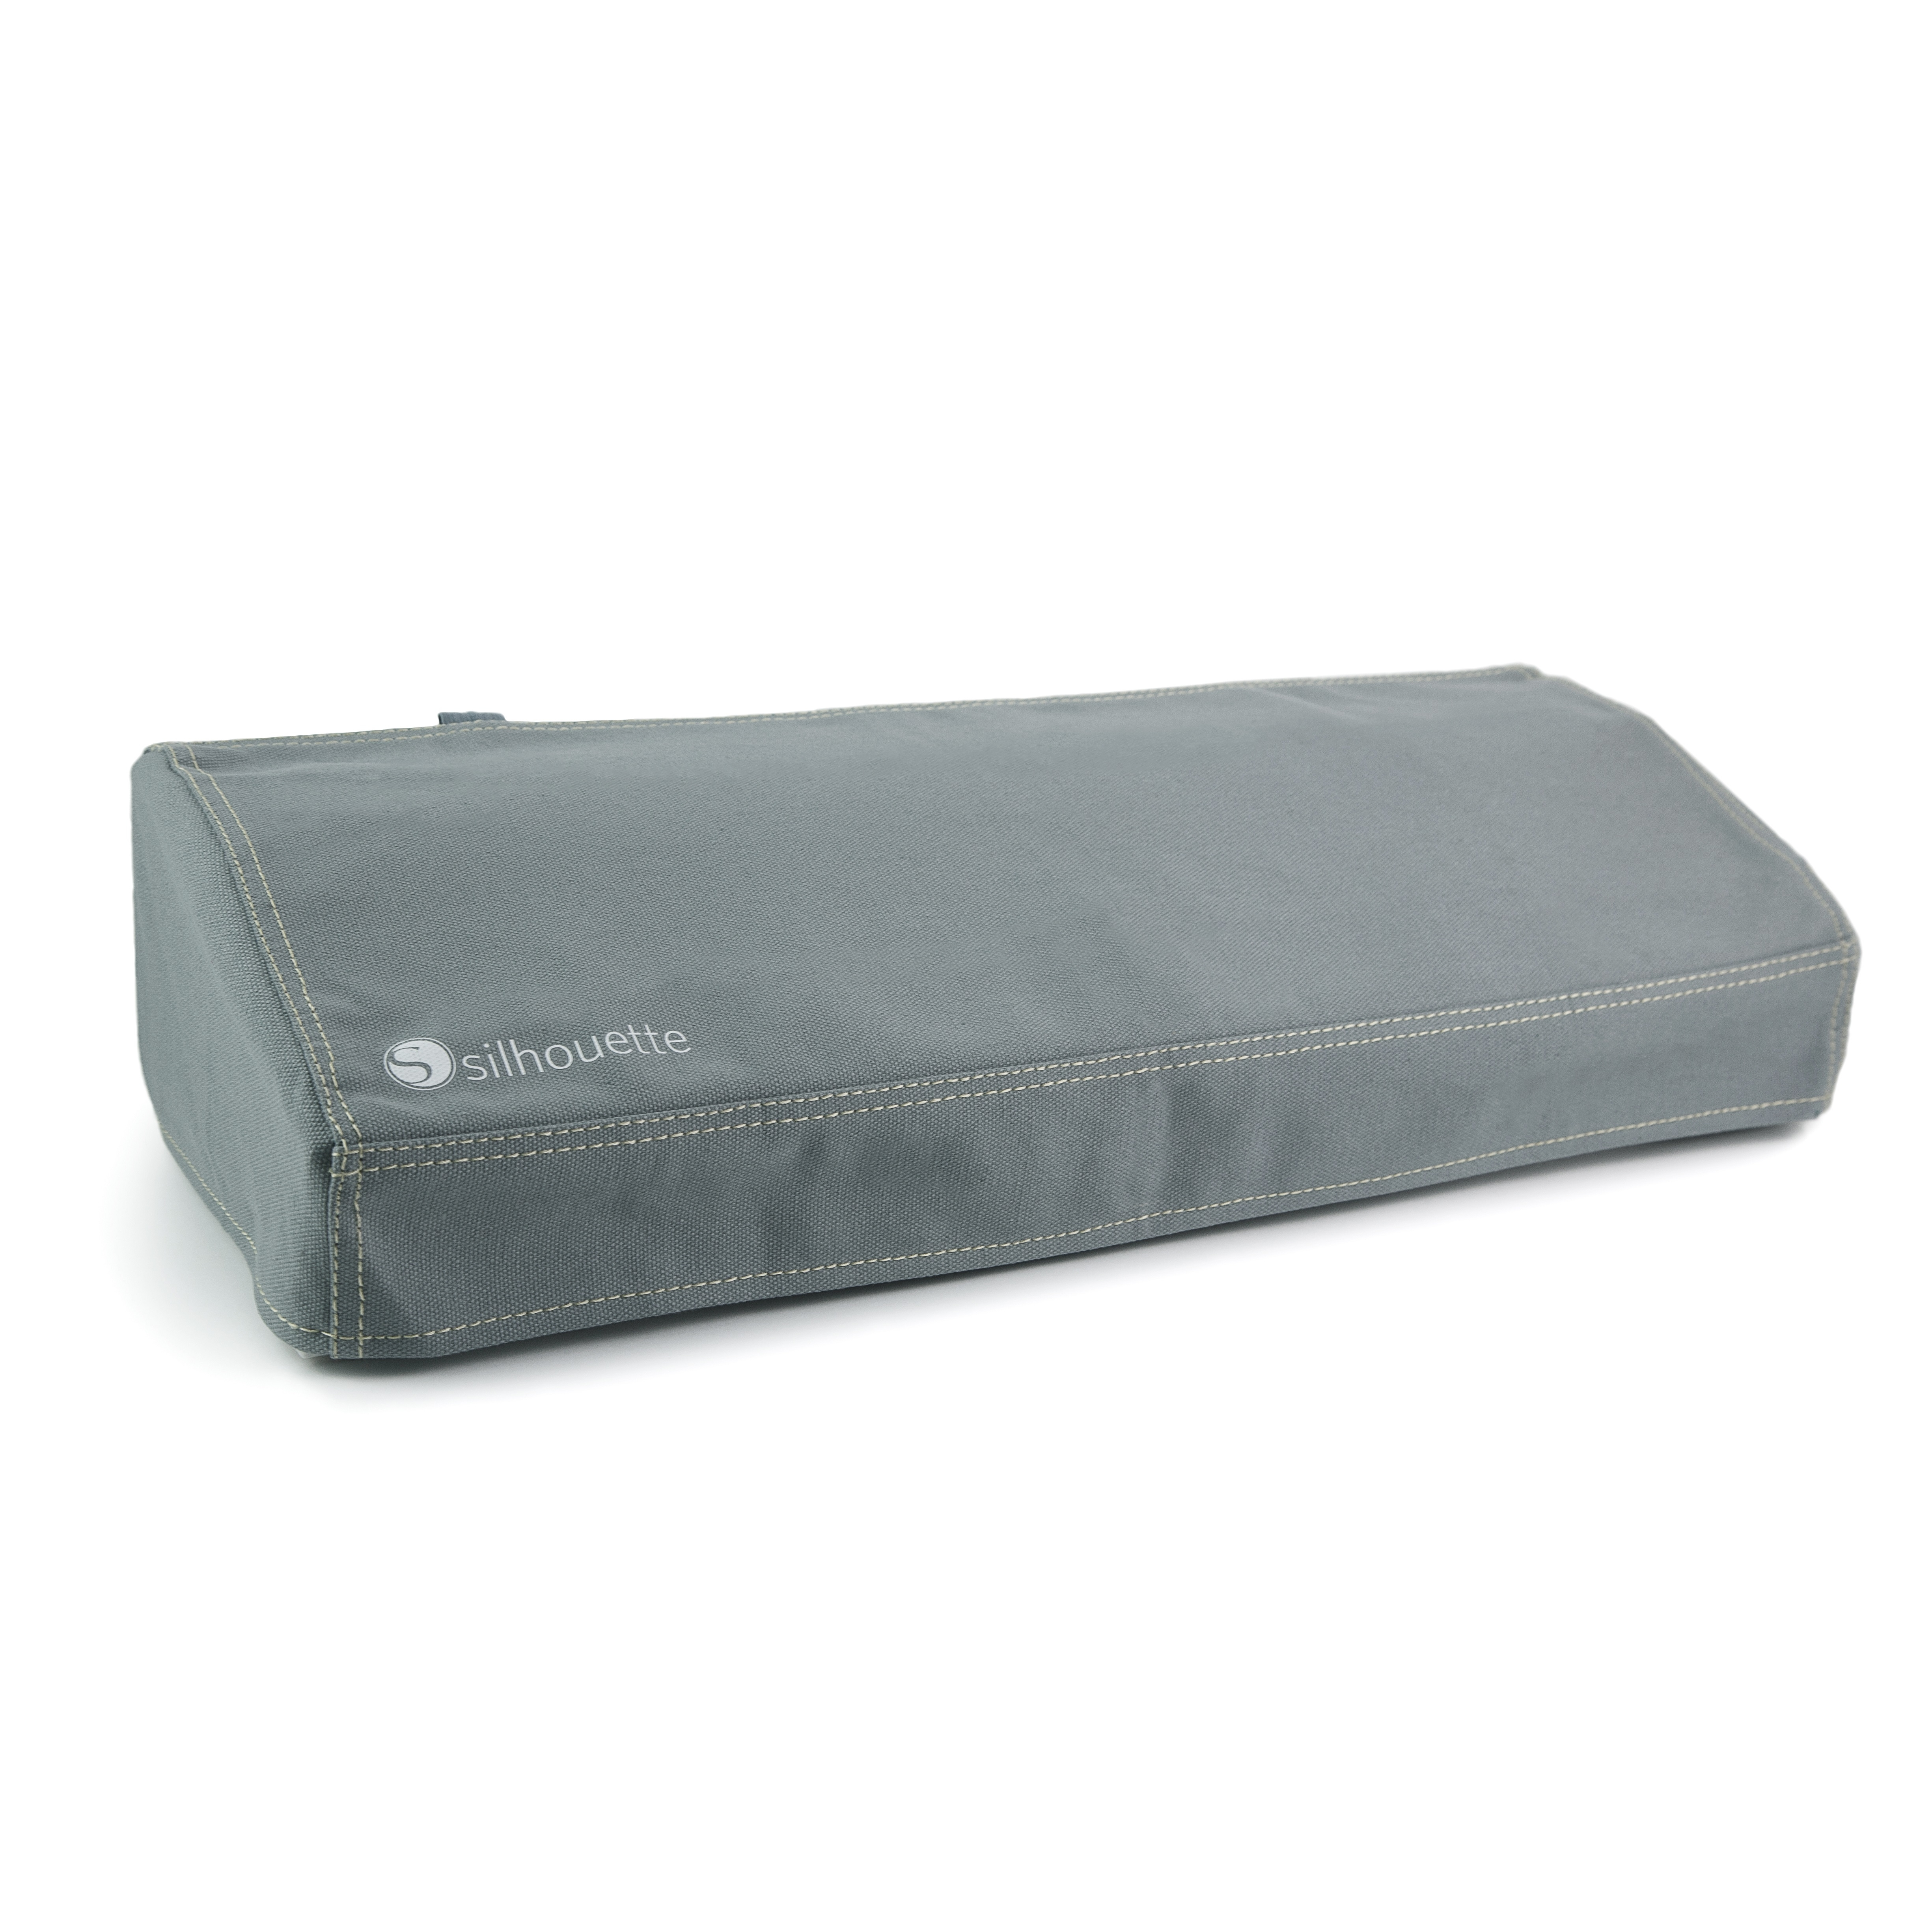 CAMEO 3 Dust Cover - Grey